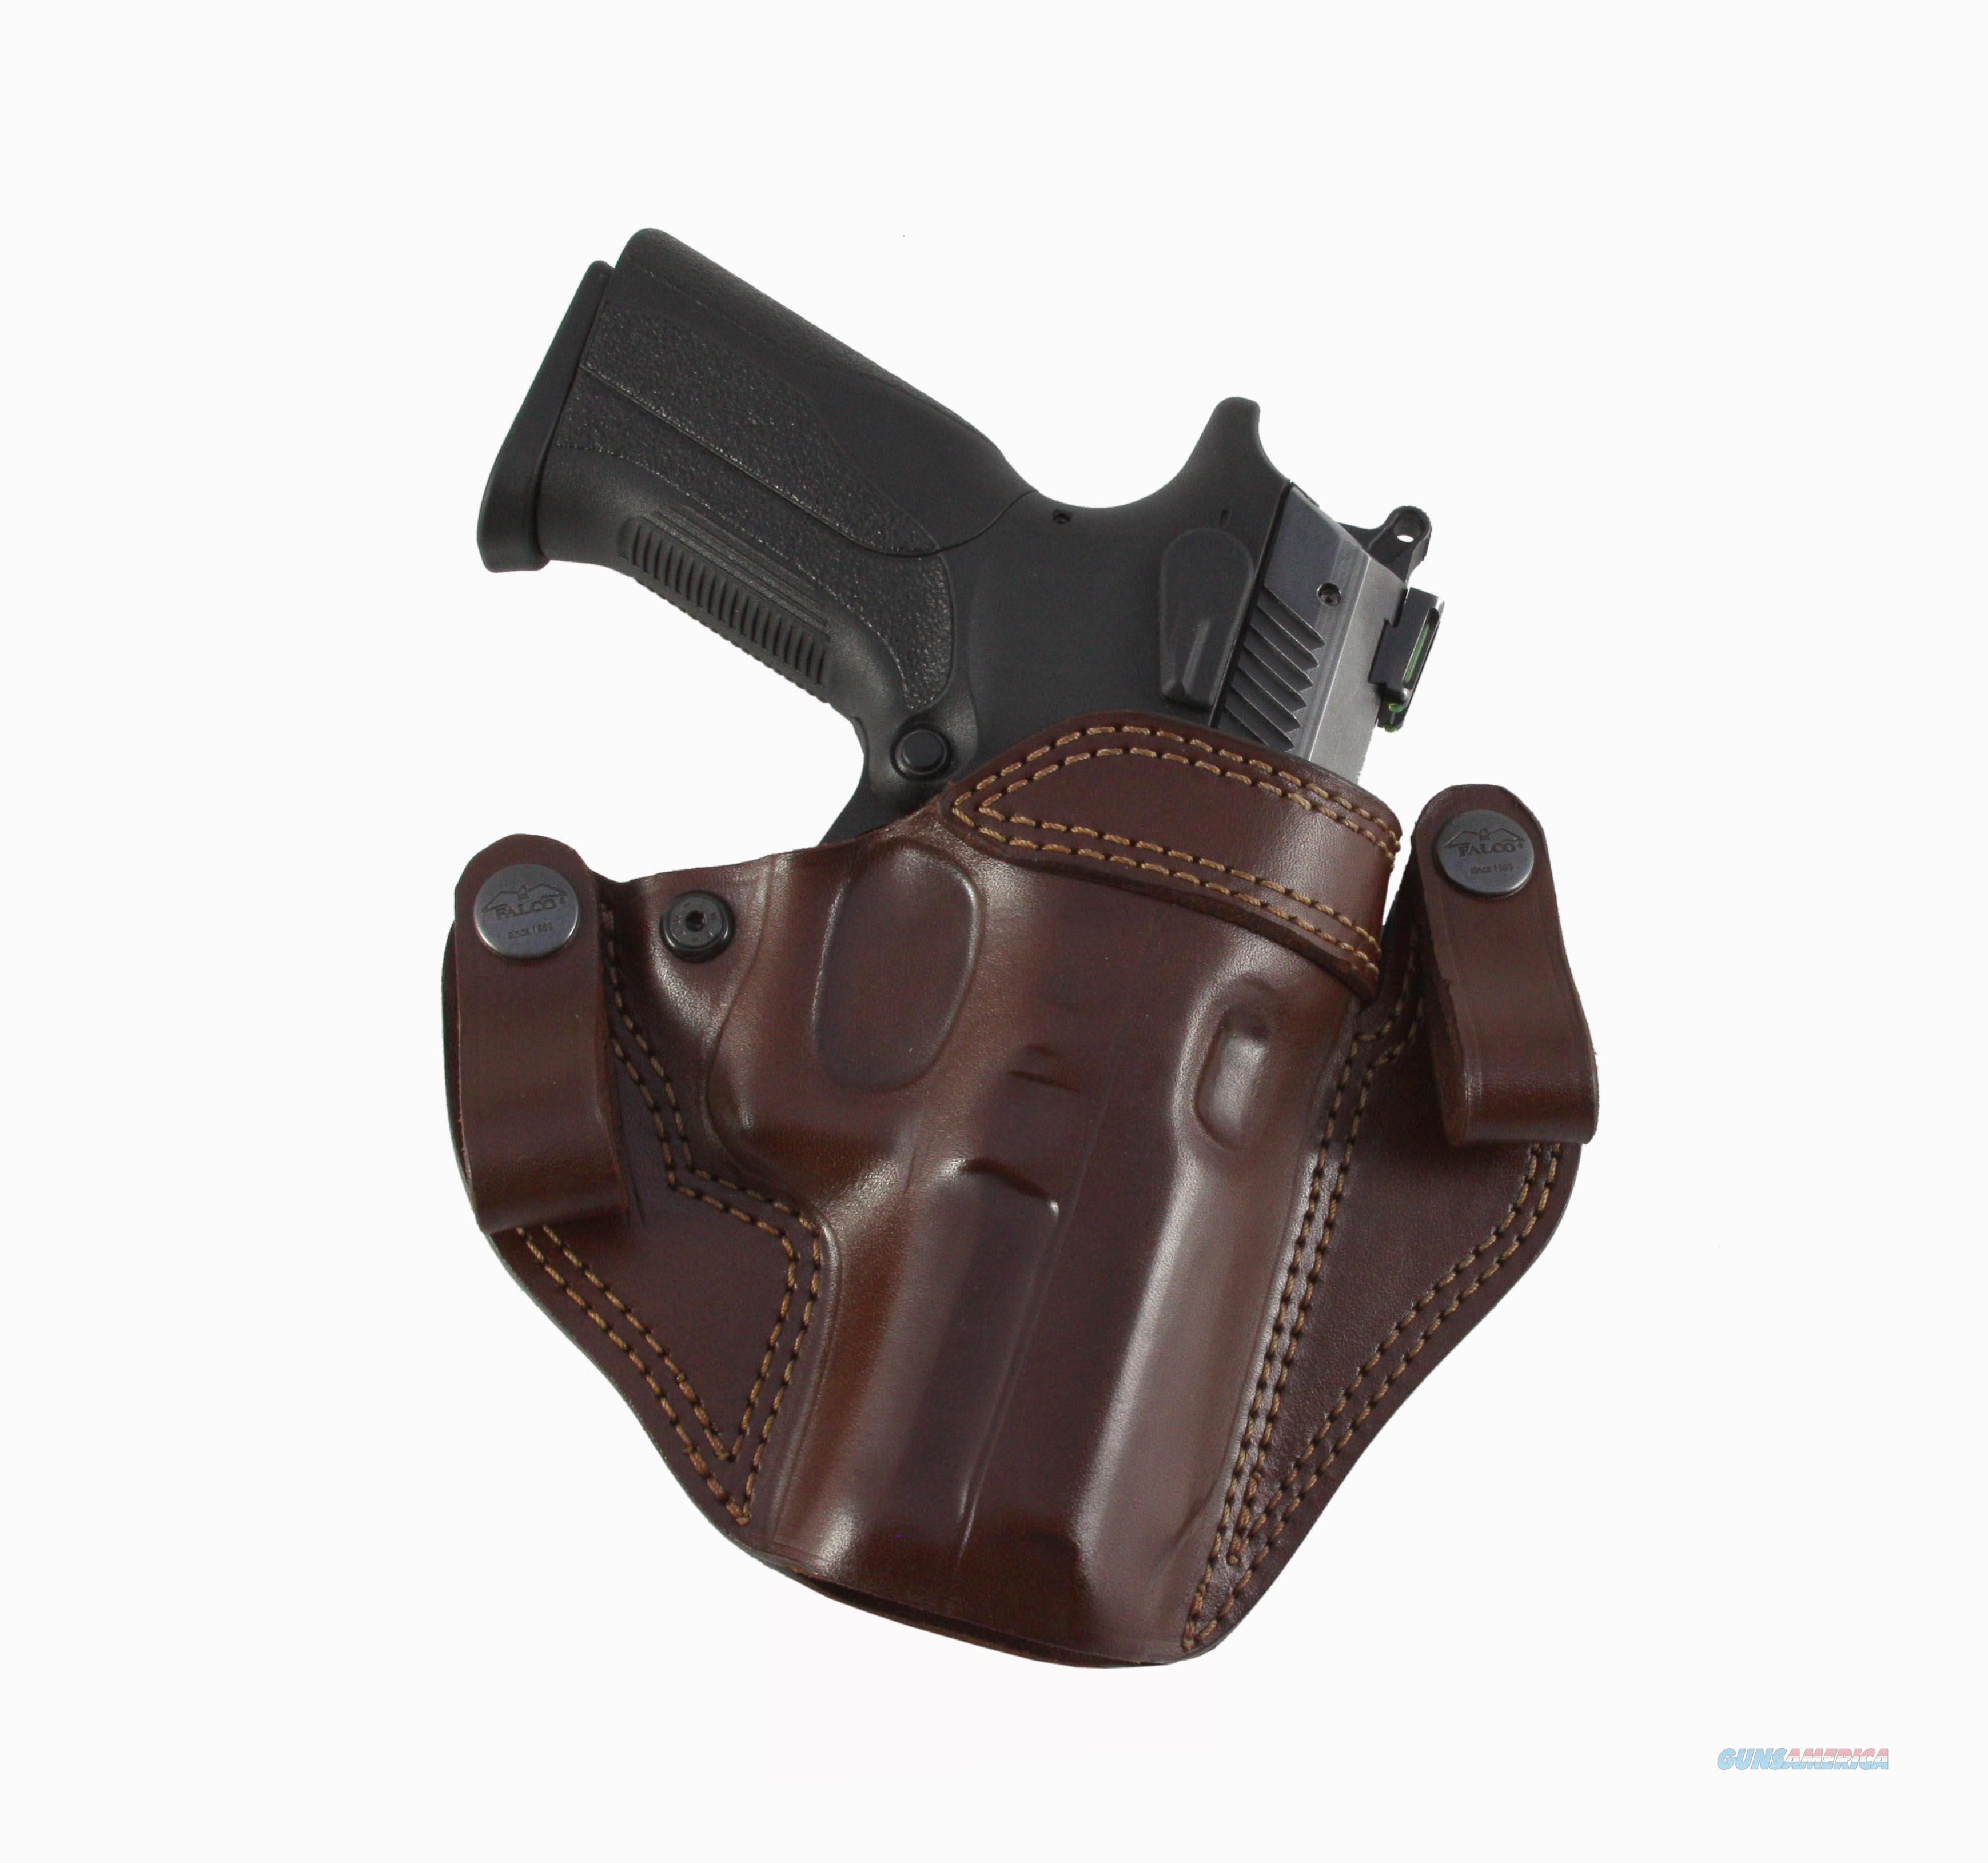 IWB Holster for Concealed Gun Carry Smith & Wesson MP9  Non-Guns > Holsters and Gunleather > Concealed Carry